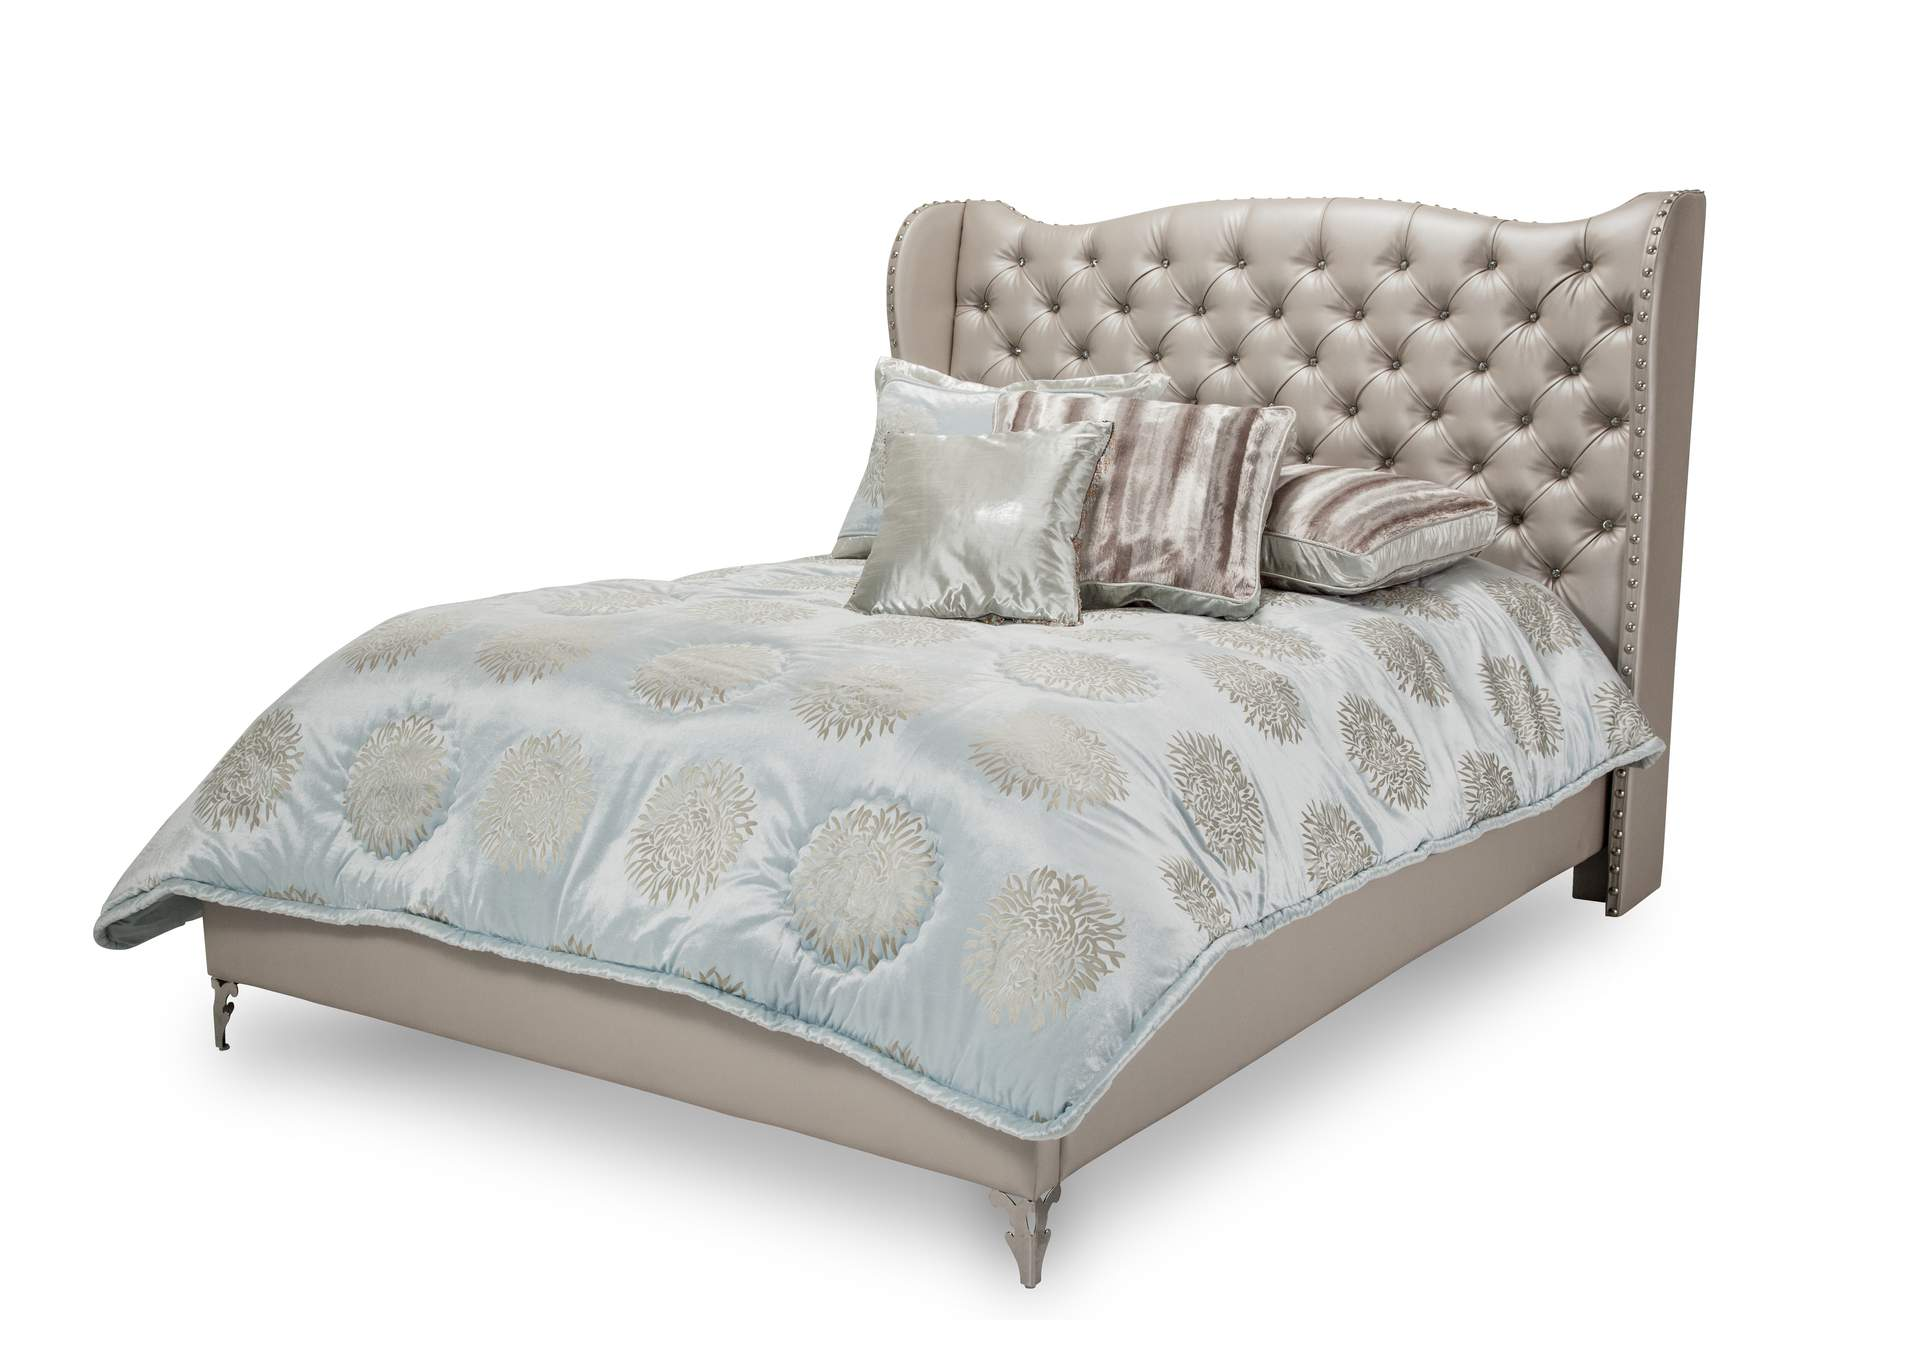 Hollywood Loft Pearl Queen Upholstered Platform Bed,AICO